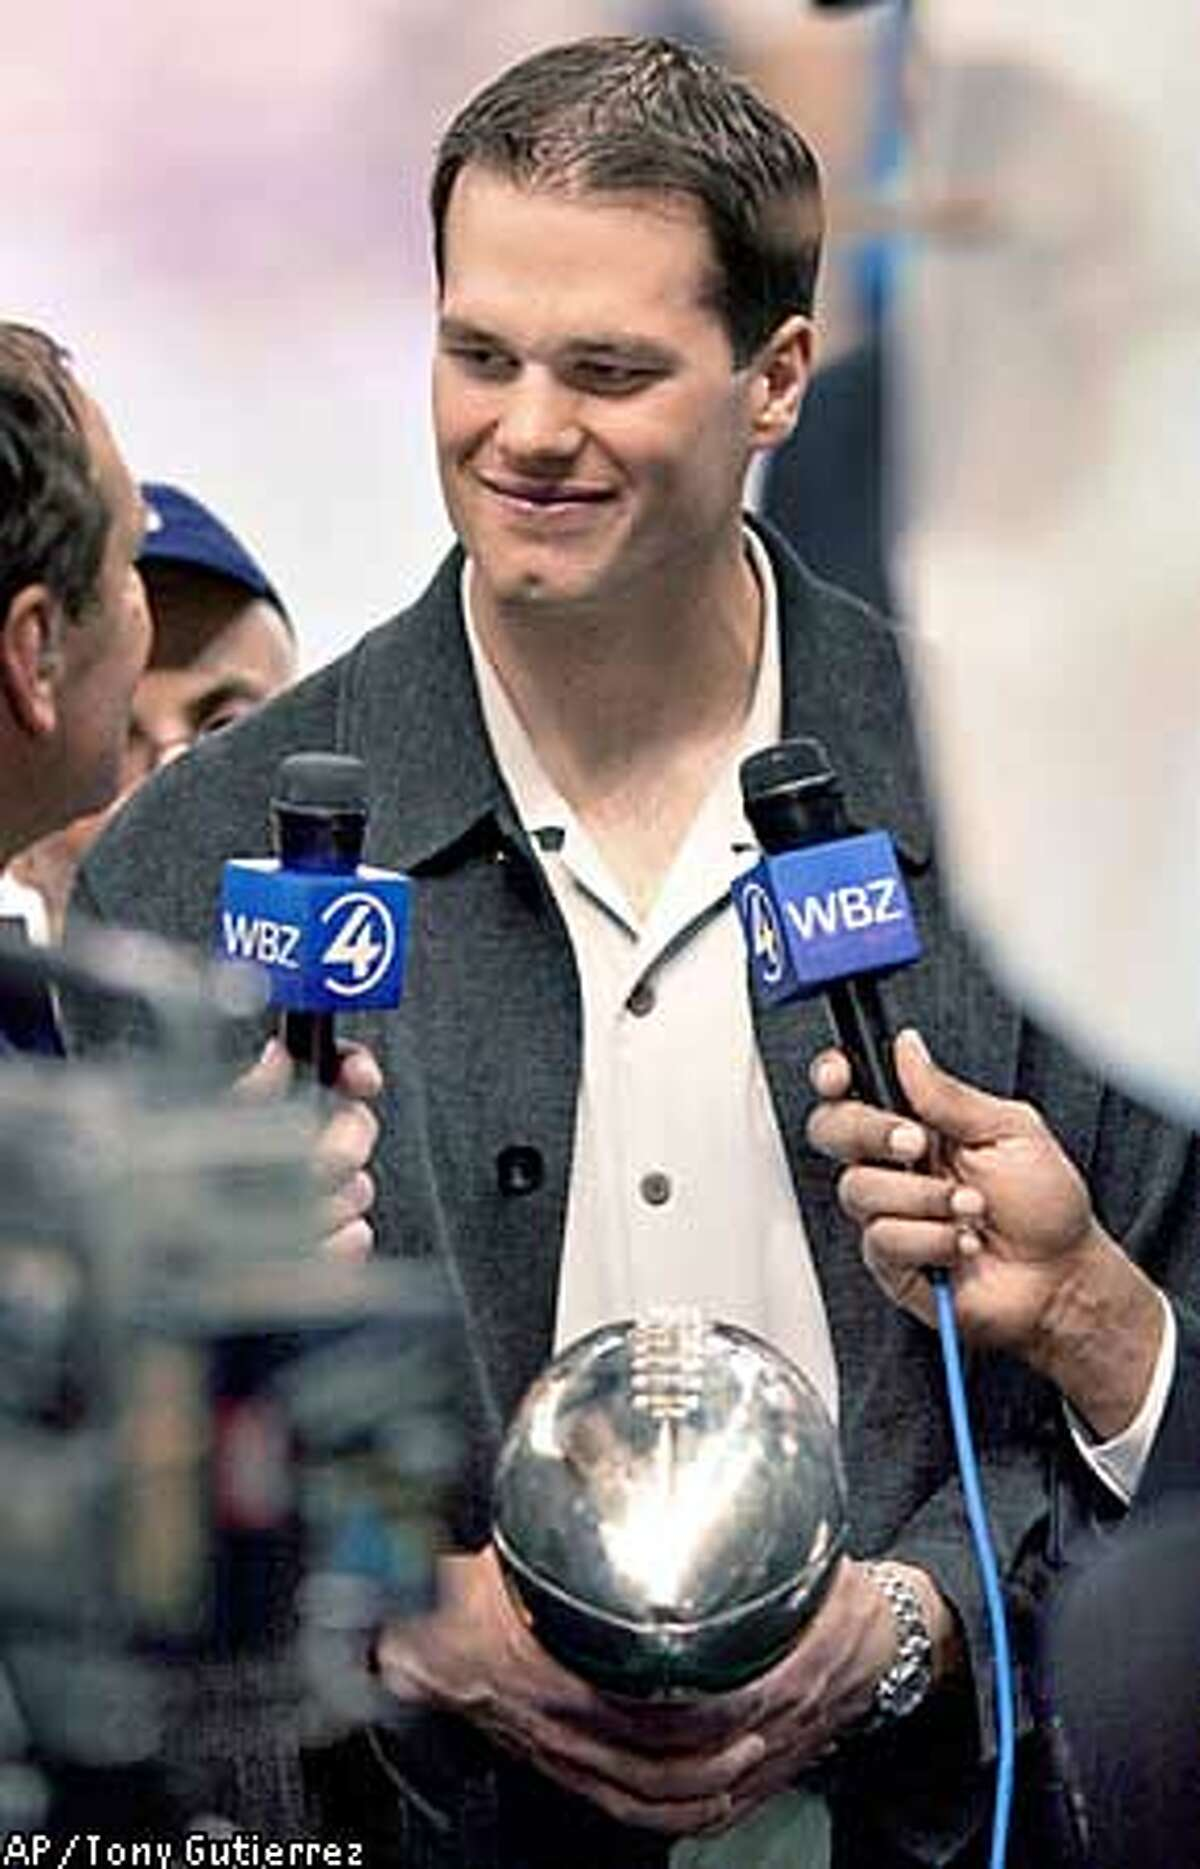 New England Patriots quarterback Tom Brady holds the Vince Lombardi Trophy as he is interviewed after the Patriots beat the St. Louis Rams 20-17 in XXXVI at the Louisiana Superdome Sunday, Feb. 3, 2002 in New Orleans. (AP Photo/Tony Gutierrez)